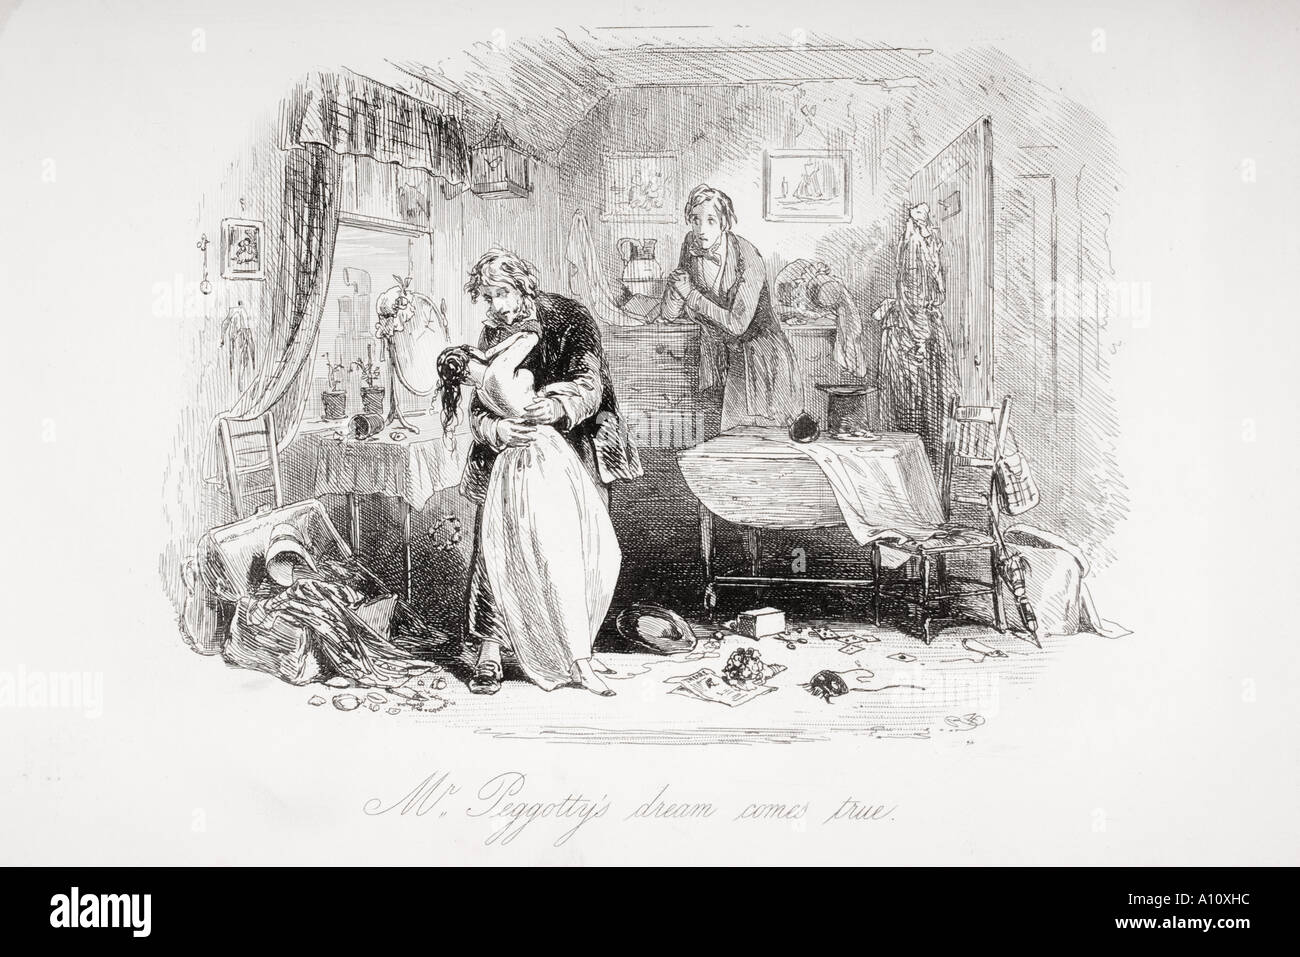 mr peggotty s dream comes true illustration from the charles mr peggotty s dream comes true illustration from the charles dickens novel david copperfield by h k